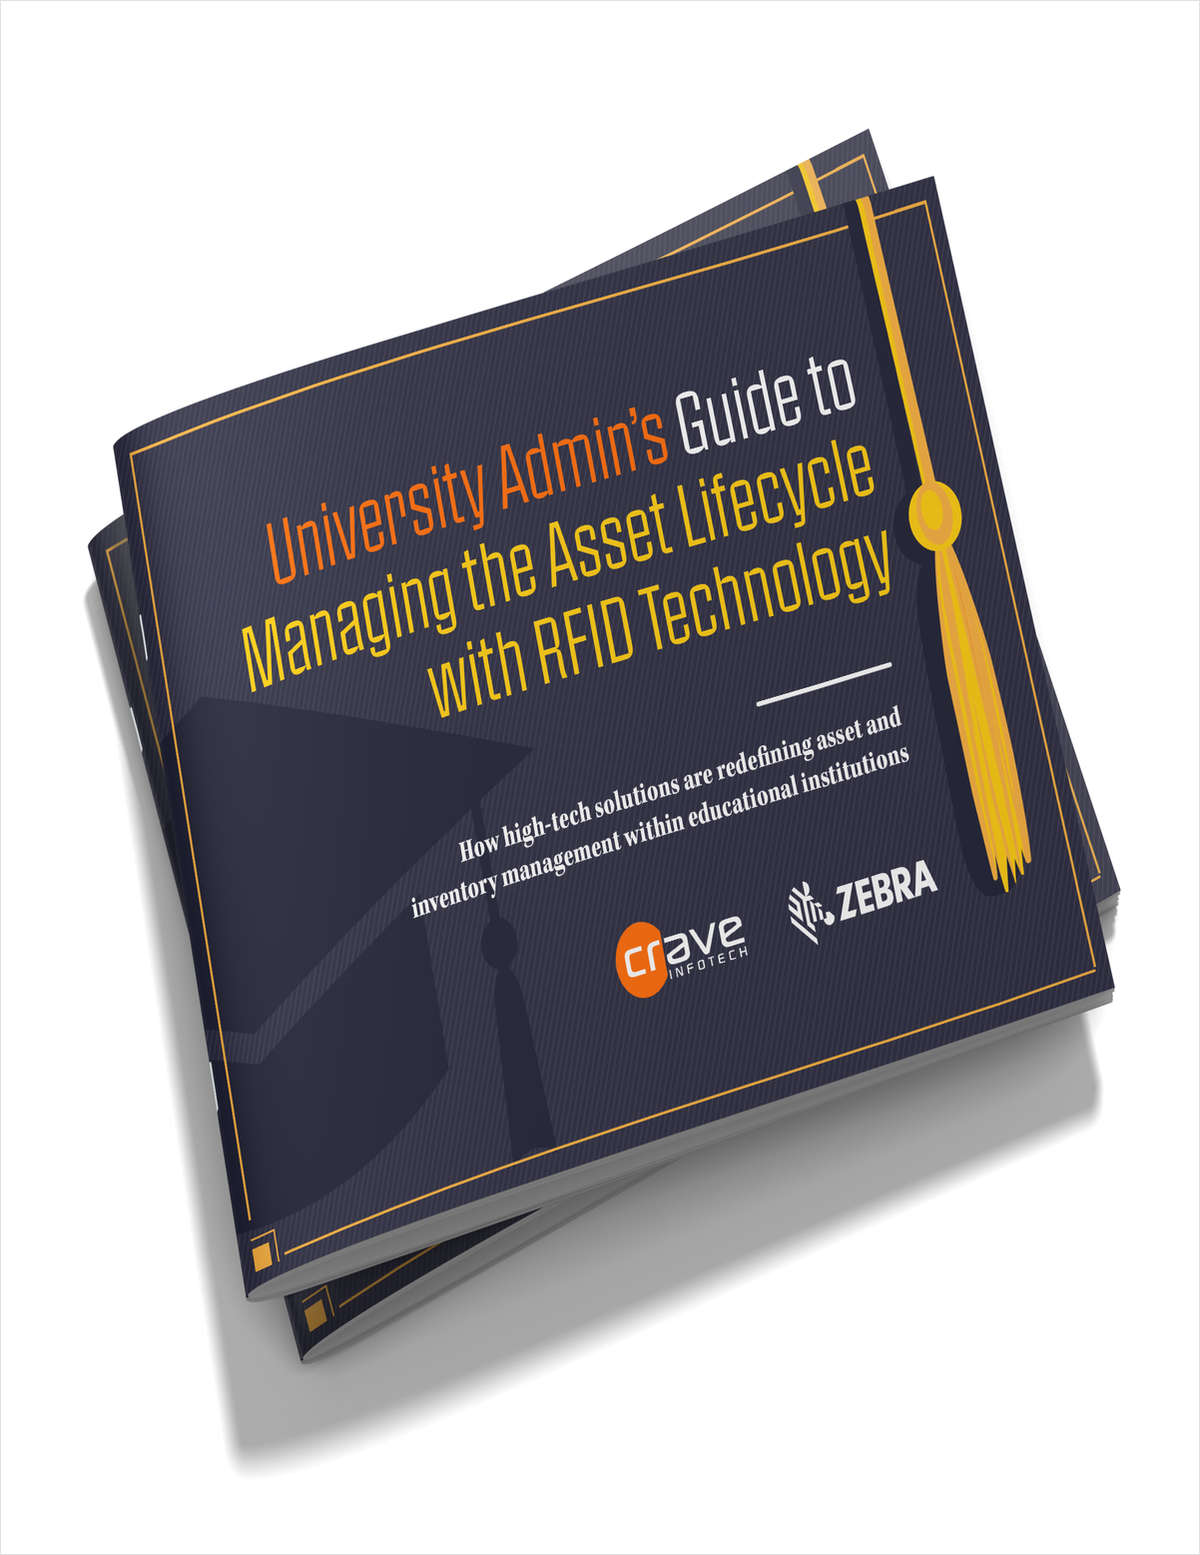 The University Admin's Guide to Tracking High-Value Assets with RFID